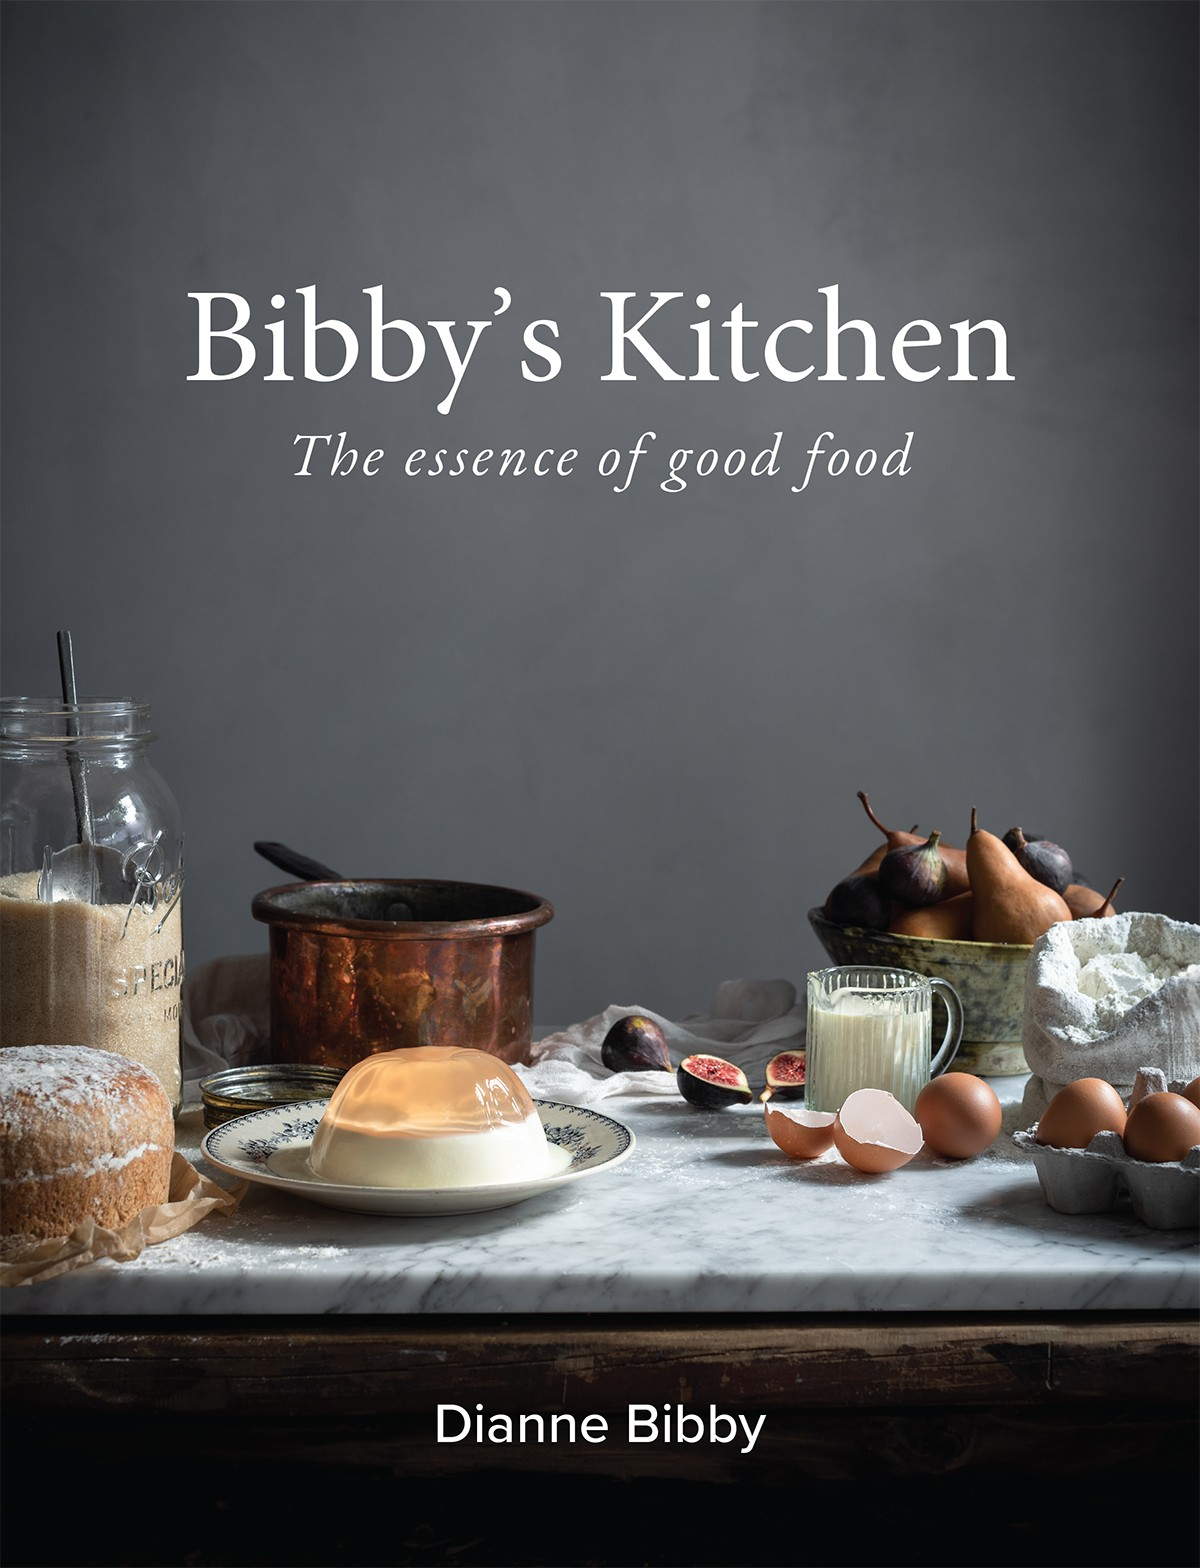 Bibby's Kitchen Cookbook | Bibbyskitchen recipes | Cookbook